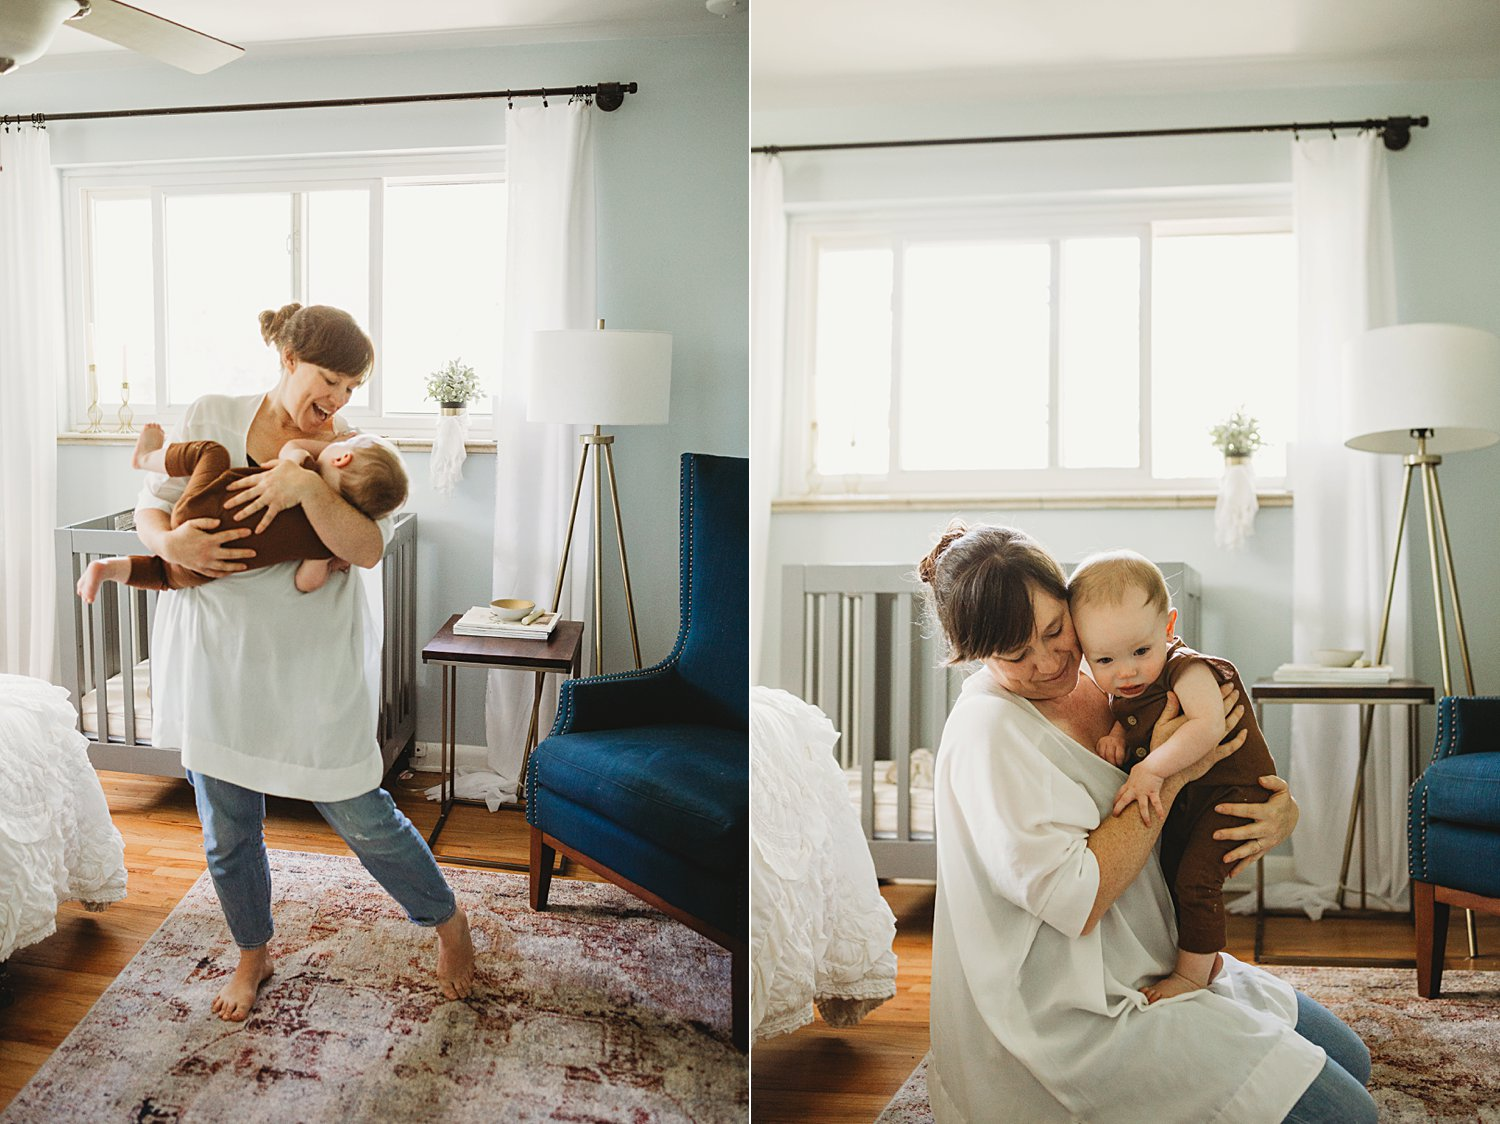 Mom snuggling baby boy and dancing